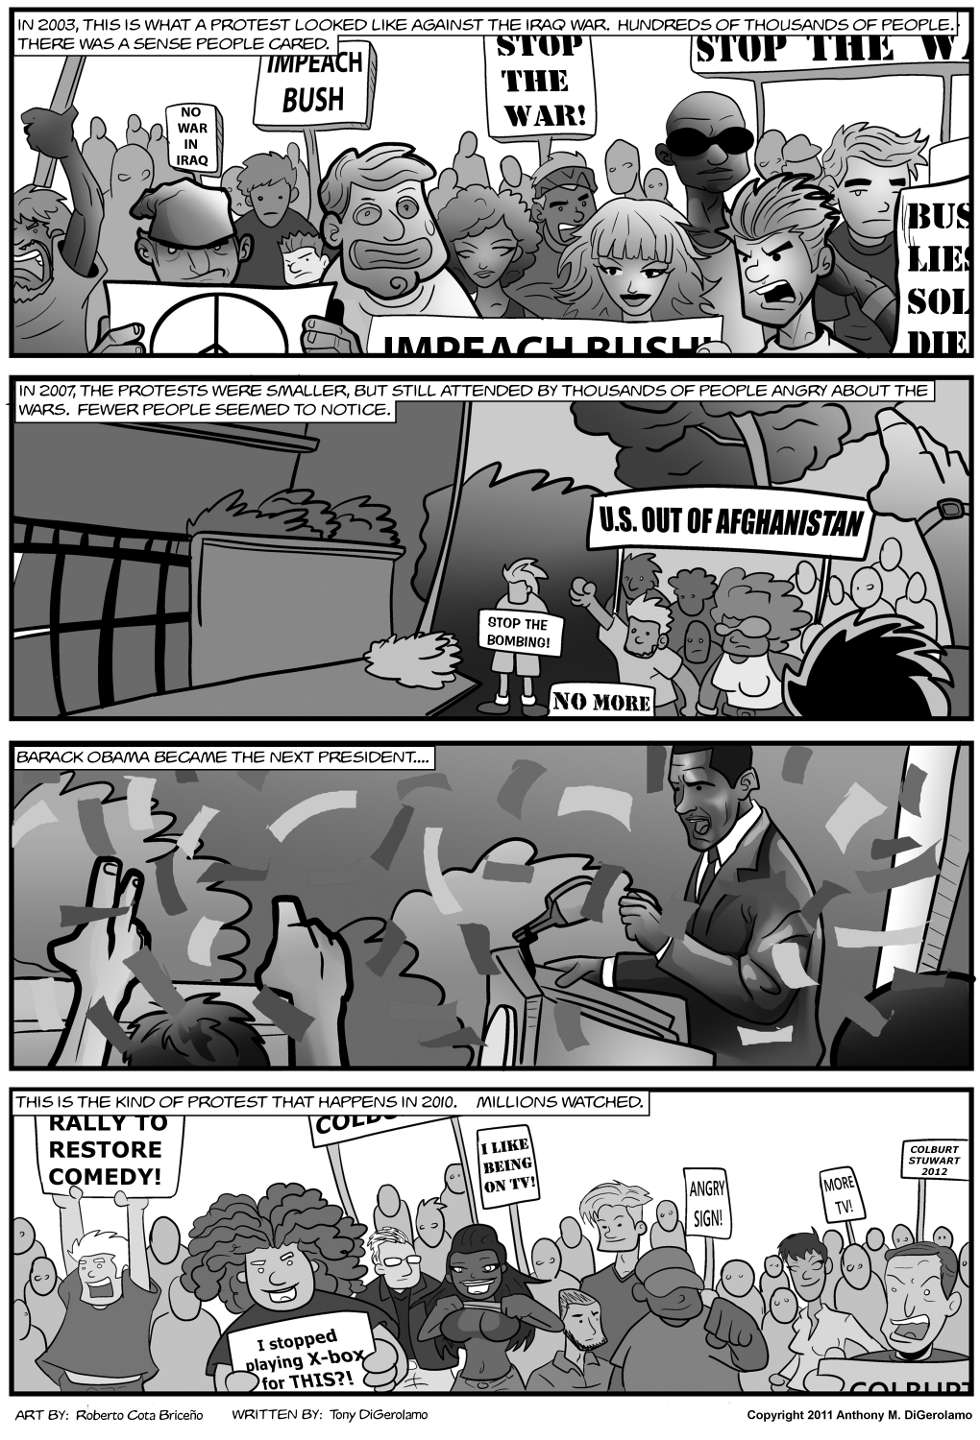 comic-2011-10-31-ANTIWARCOMIC08.jpg